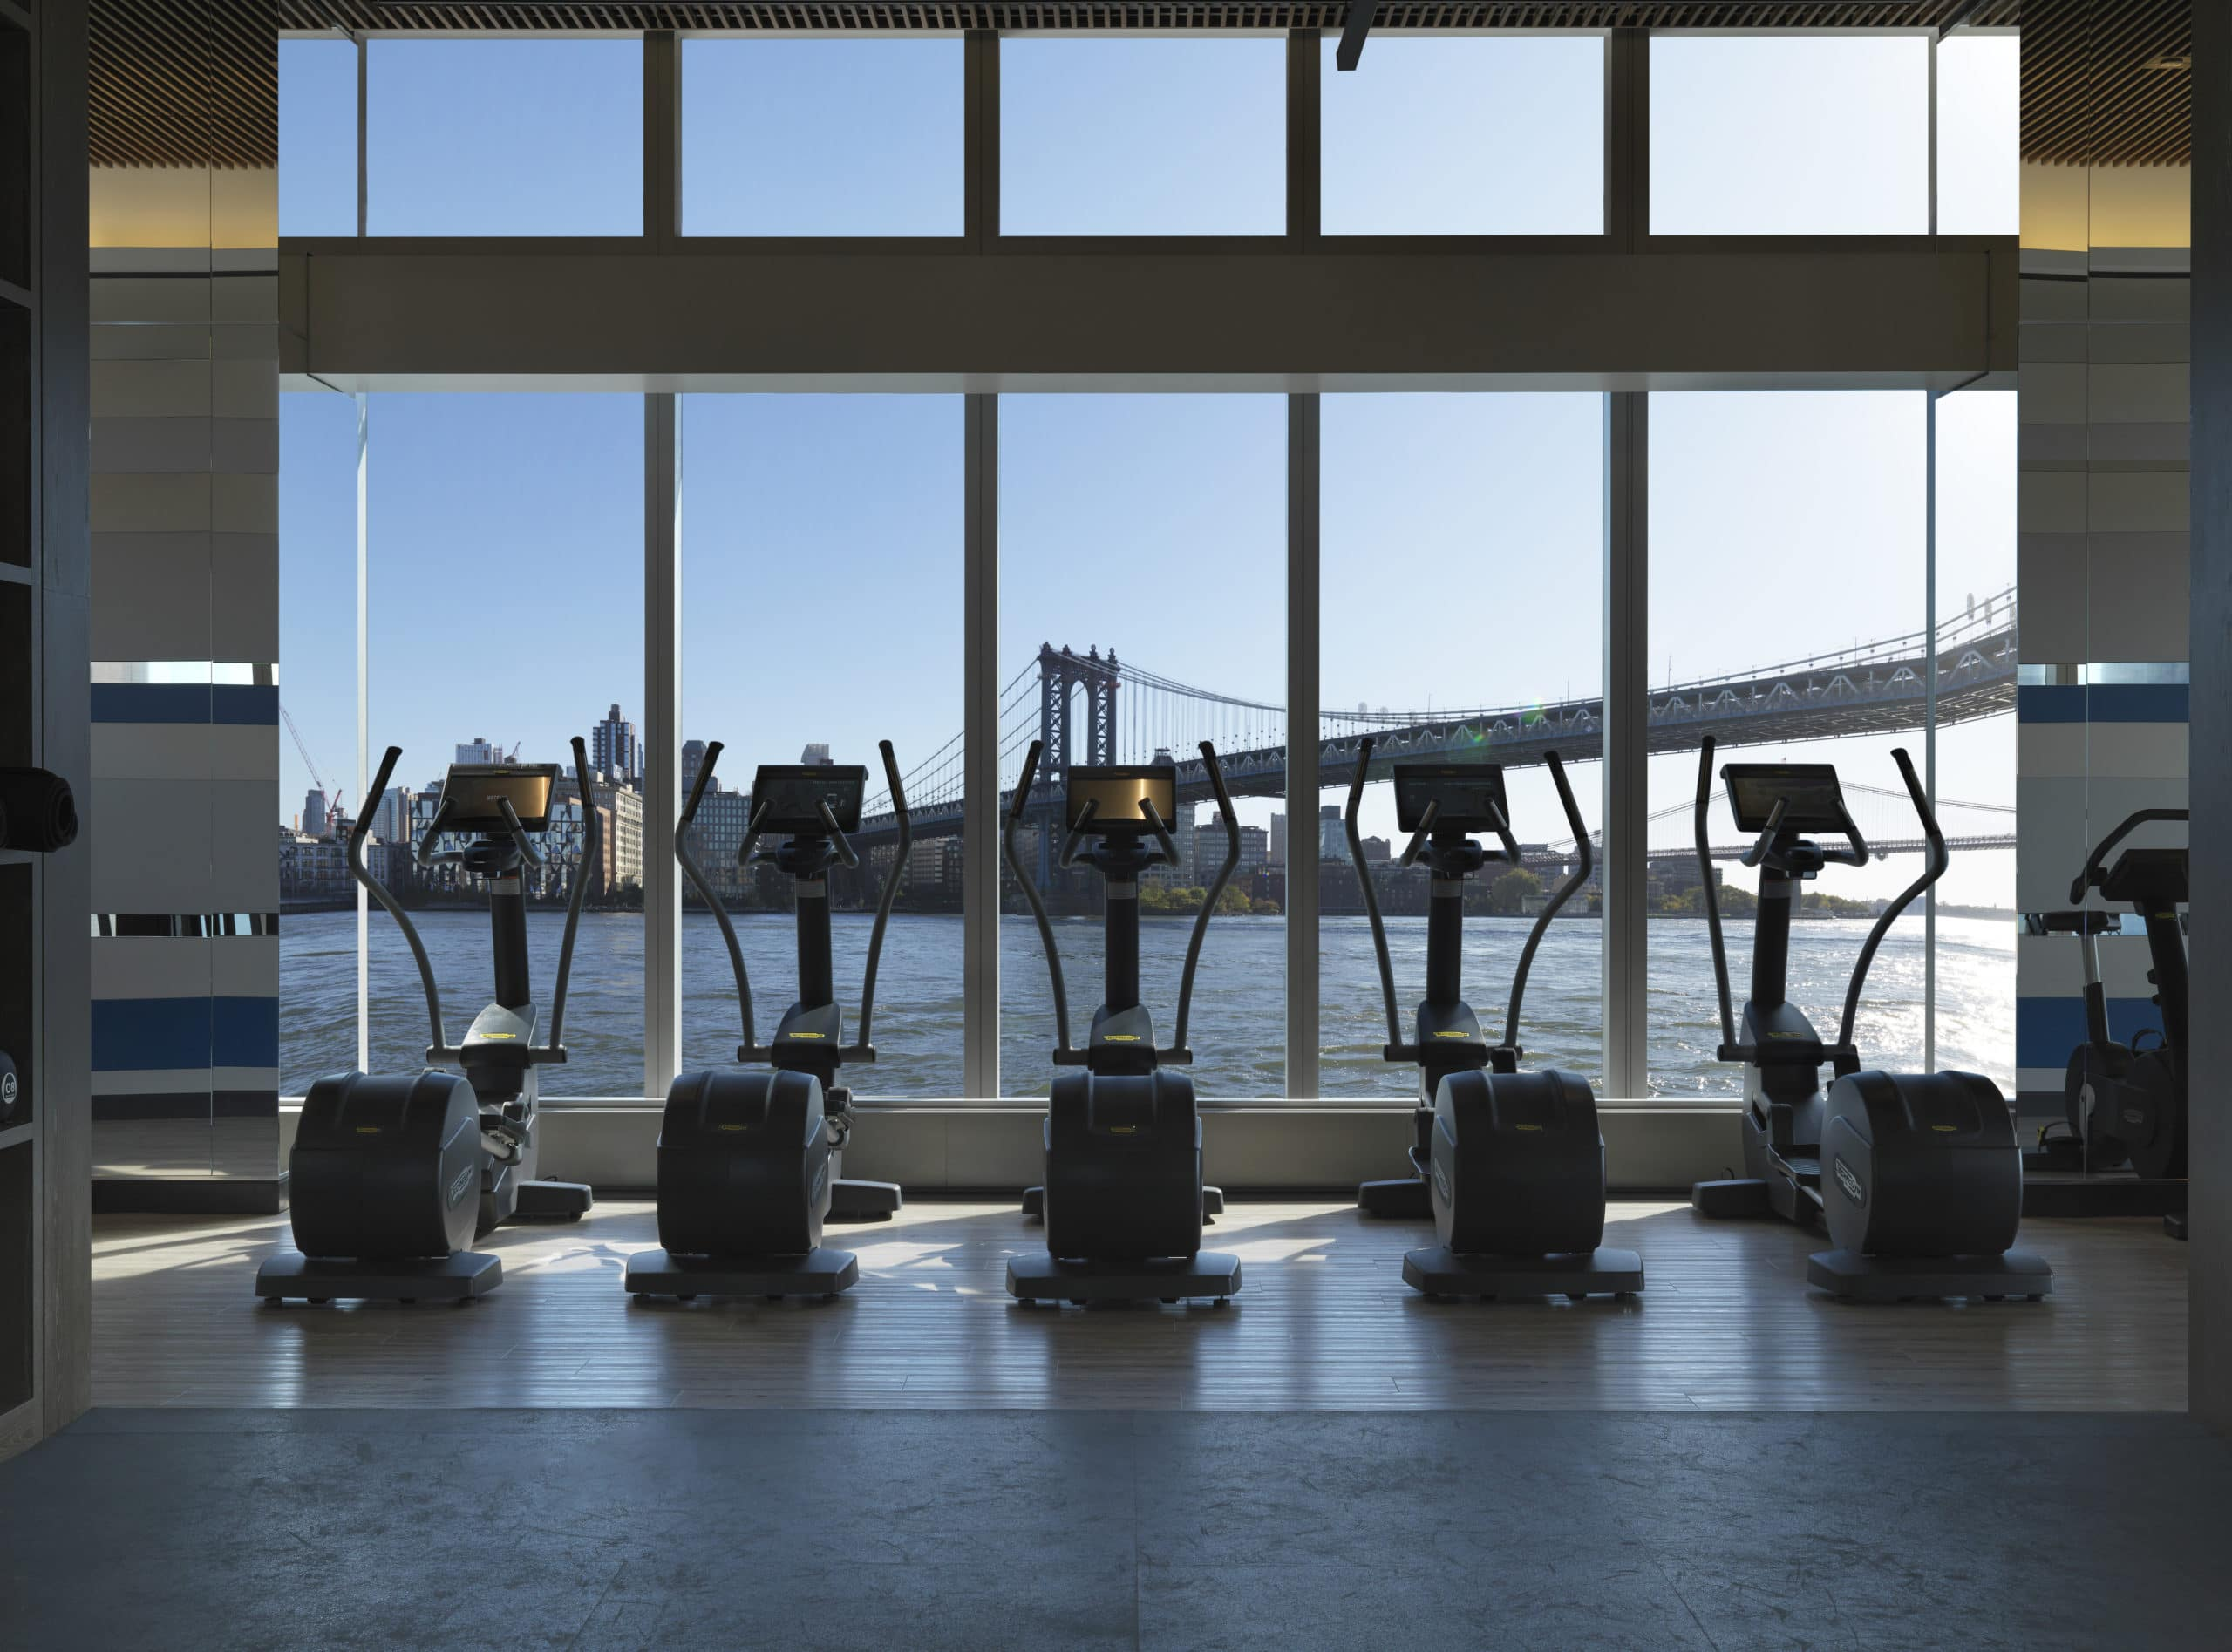 Fitness center at One Manhattan Square condos in New York City. Cardio machines in front of tall windows with city views.